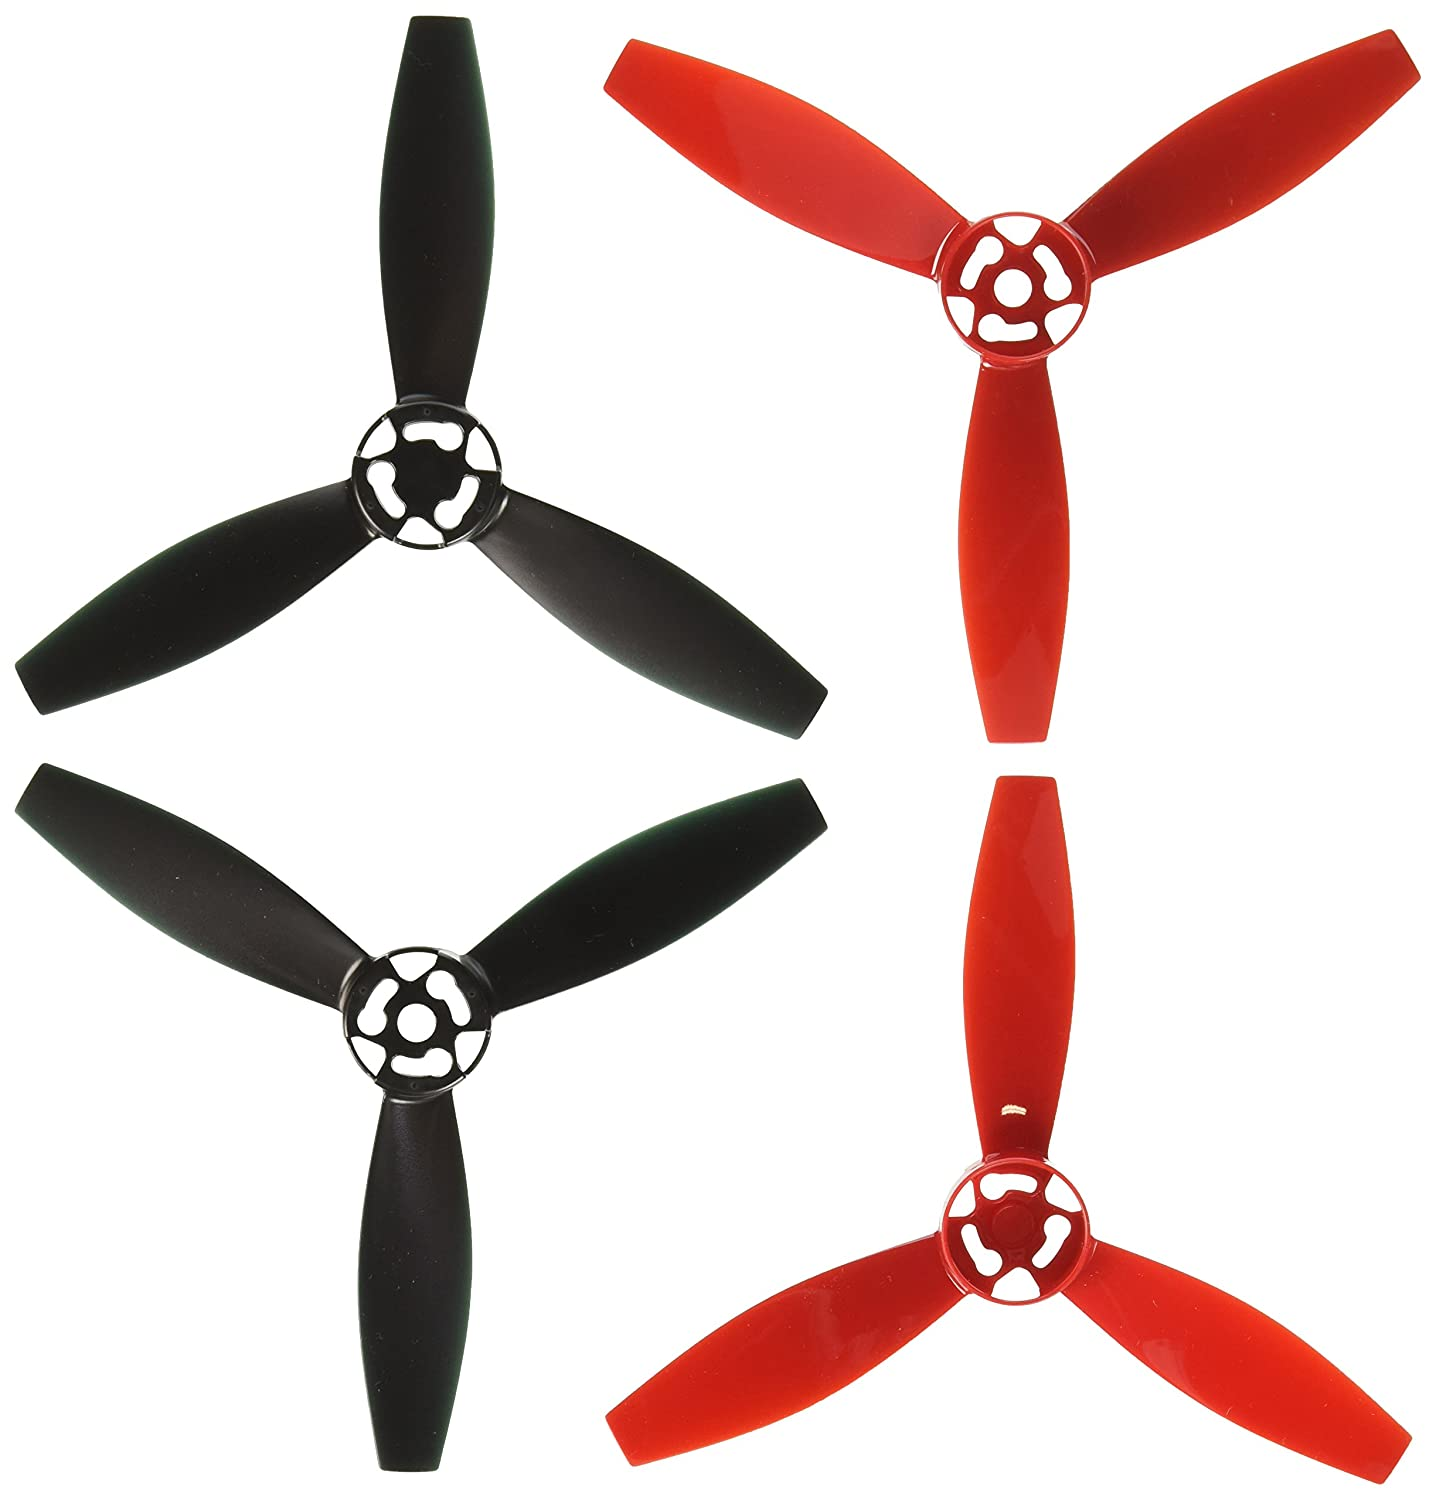 Parrot PF070219 Bebop 2 Drone Propellers, Red Parrot Inc.